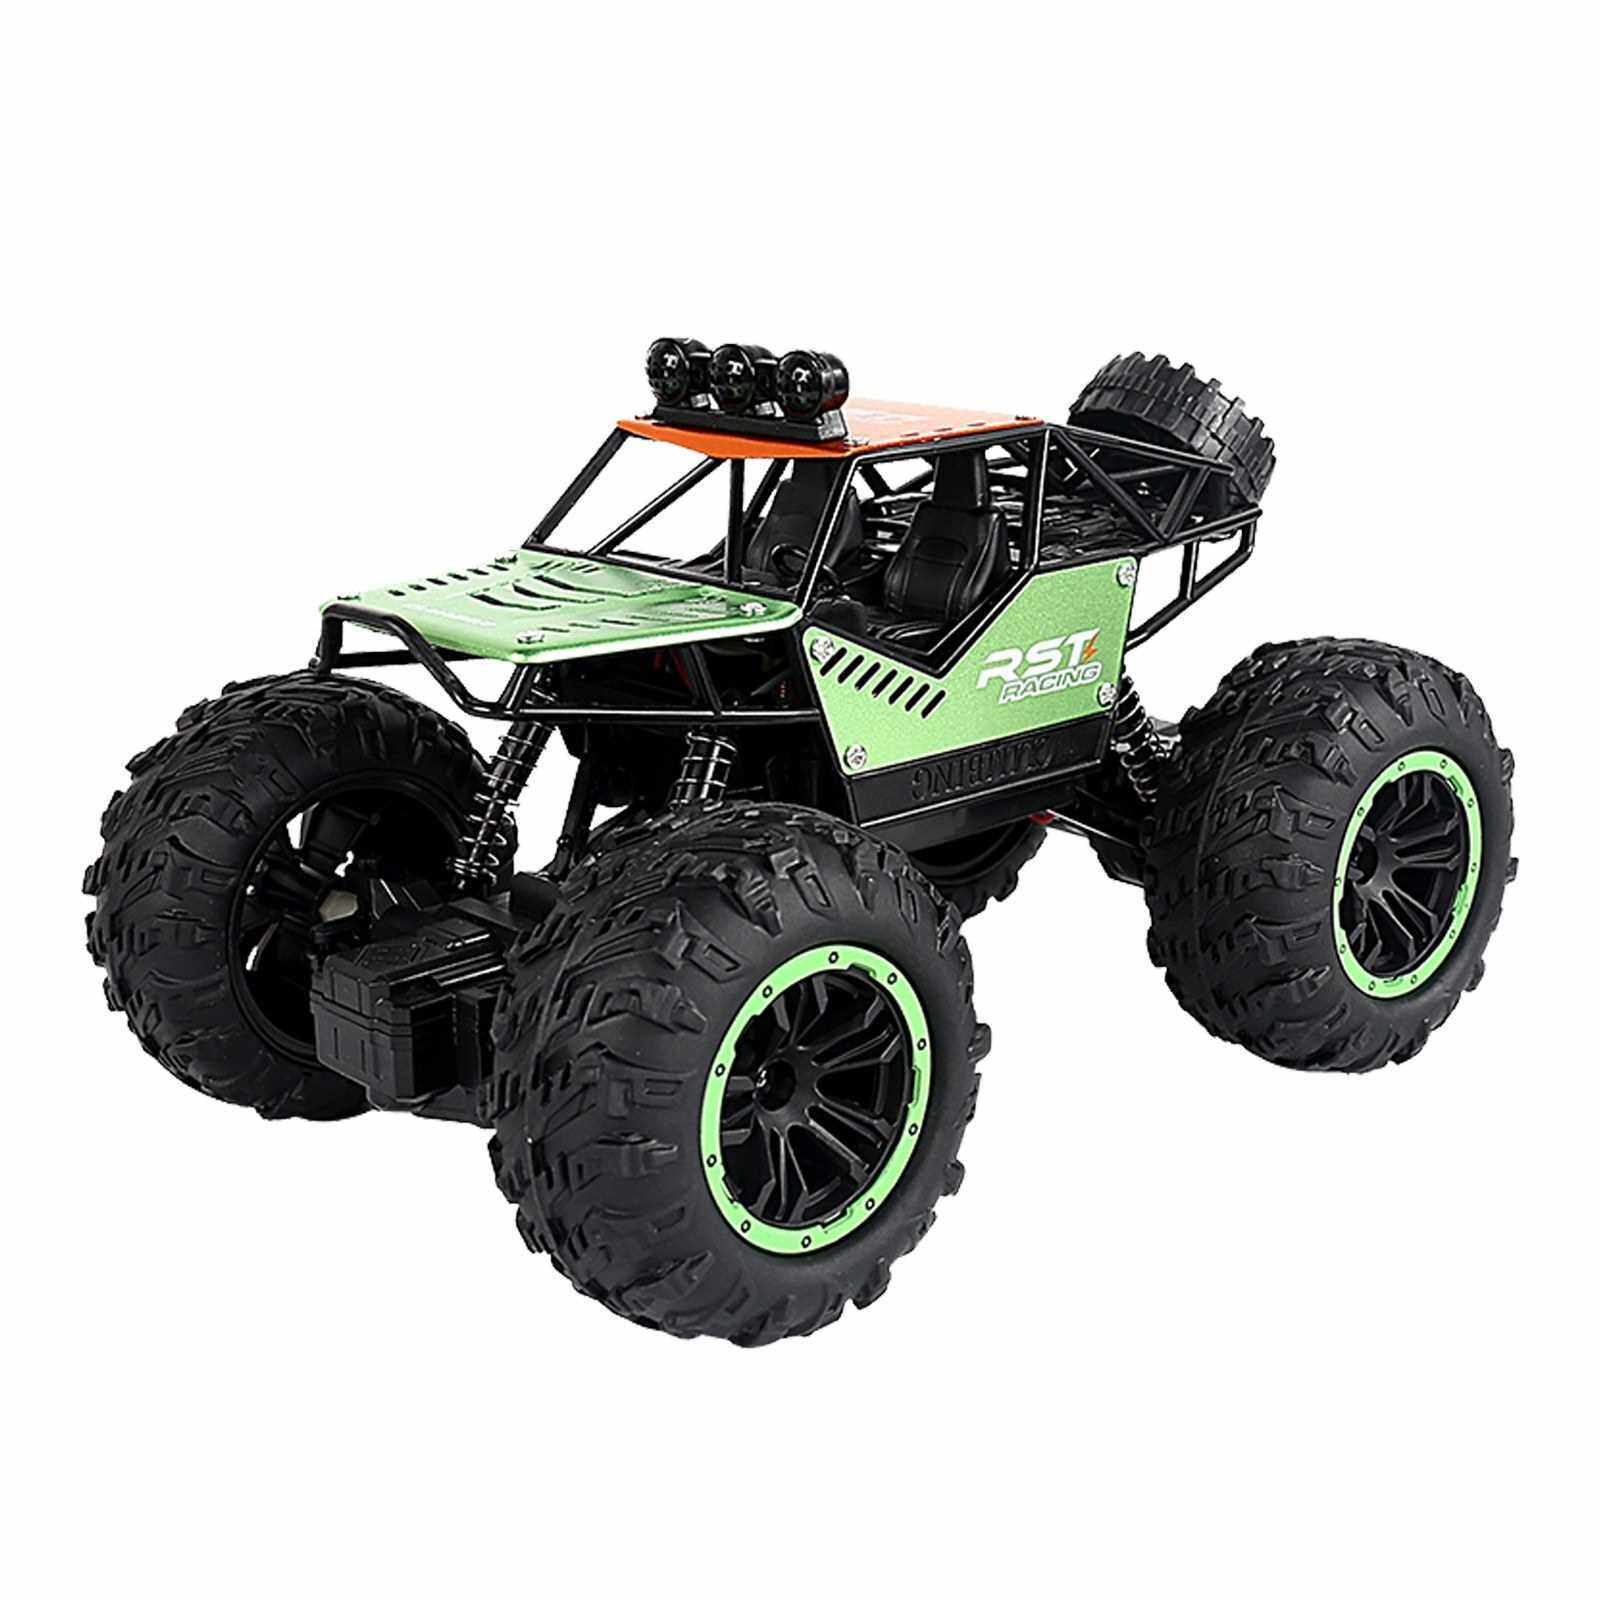 People's Choice 1/20 RC Car 20KM/H High Speed Off Road RC Trucks Alloy Shell Racing Climbing RC Car Gifts for Kids Adults (Green)